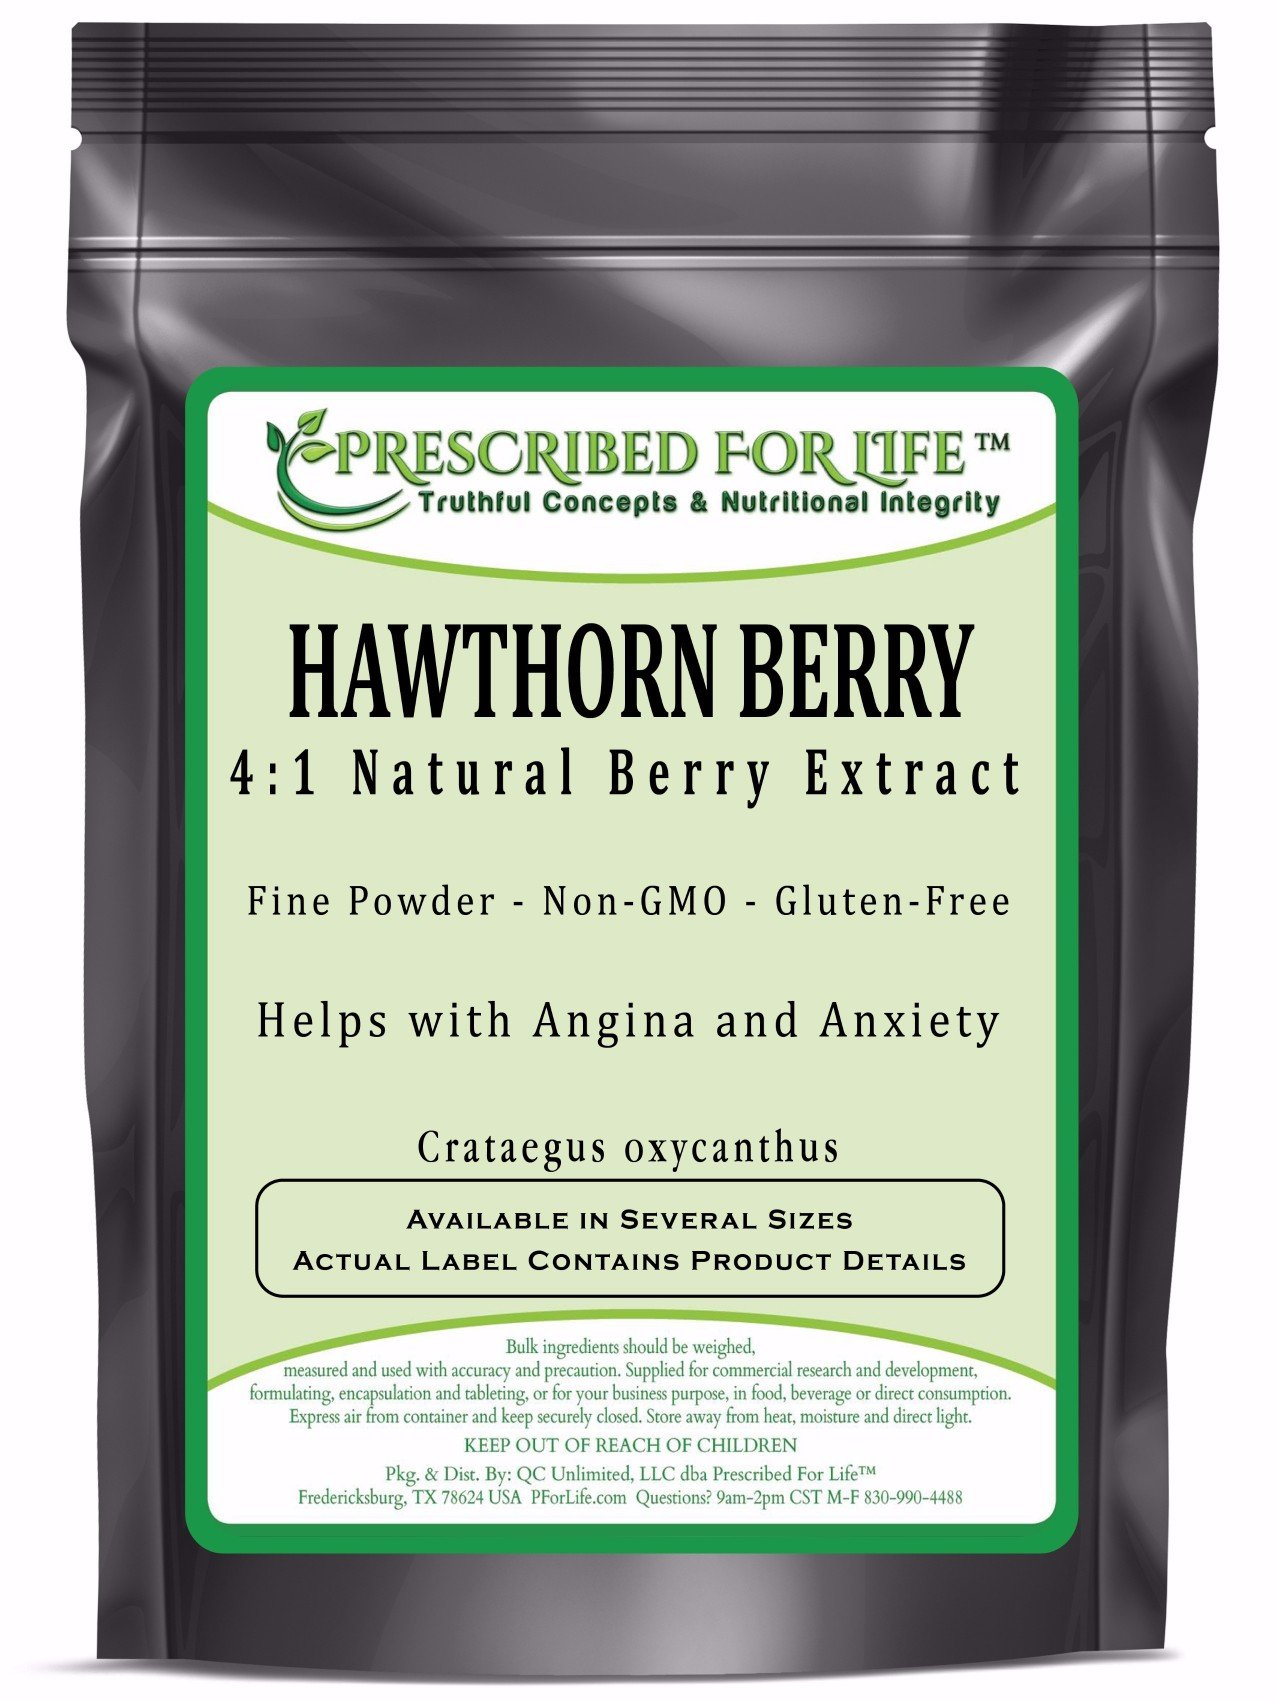 Hawthorn - 4:1 Natural Berry Extract Powder (Crataegus oxycanthus), 25 kg